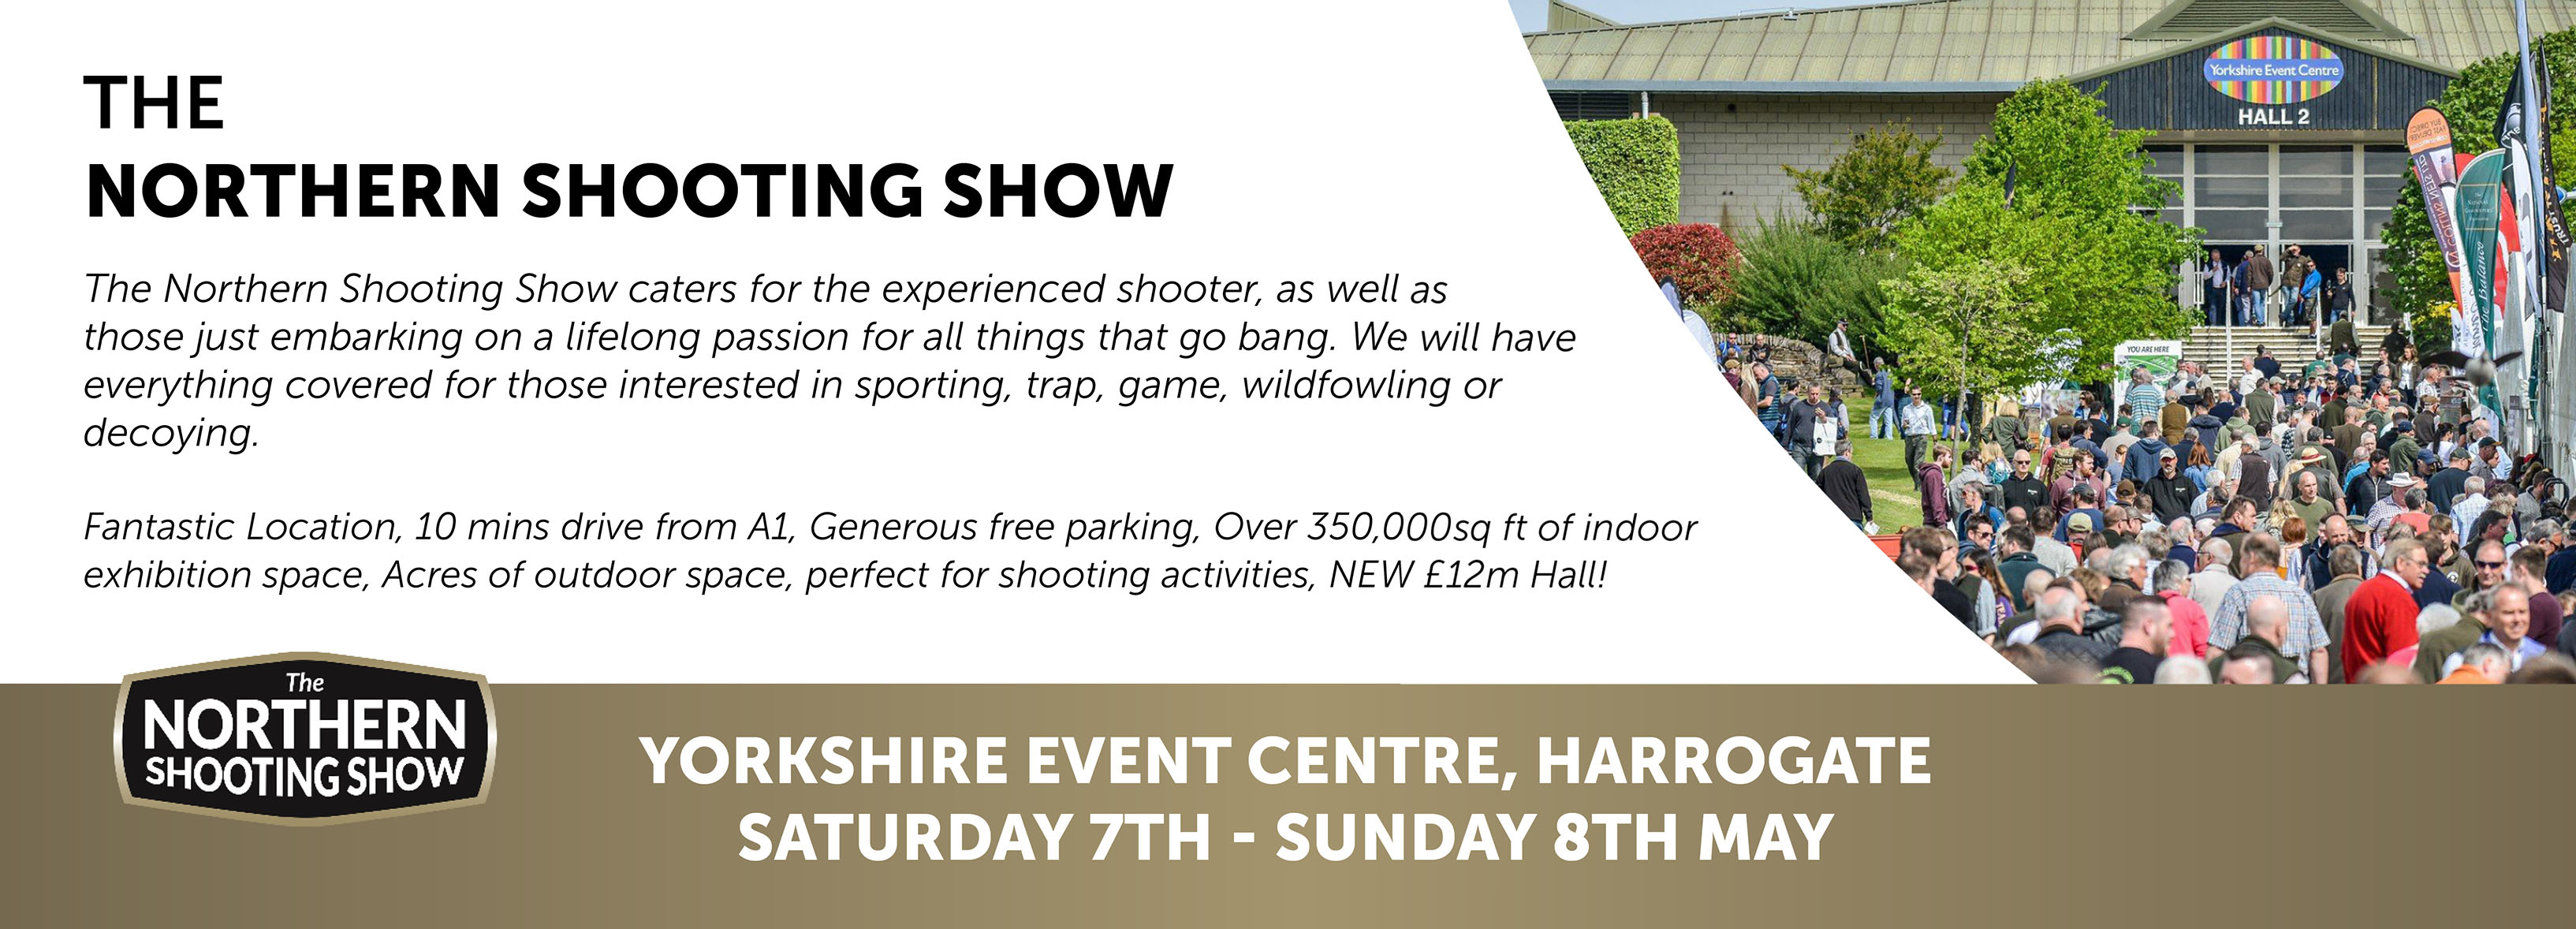 The Northern Shooting Show 2020